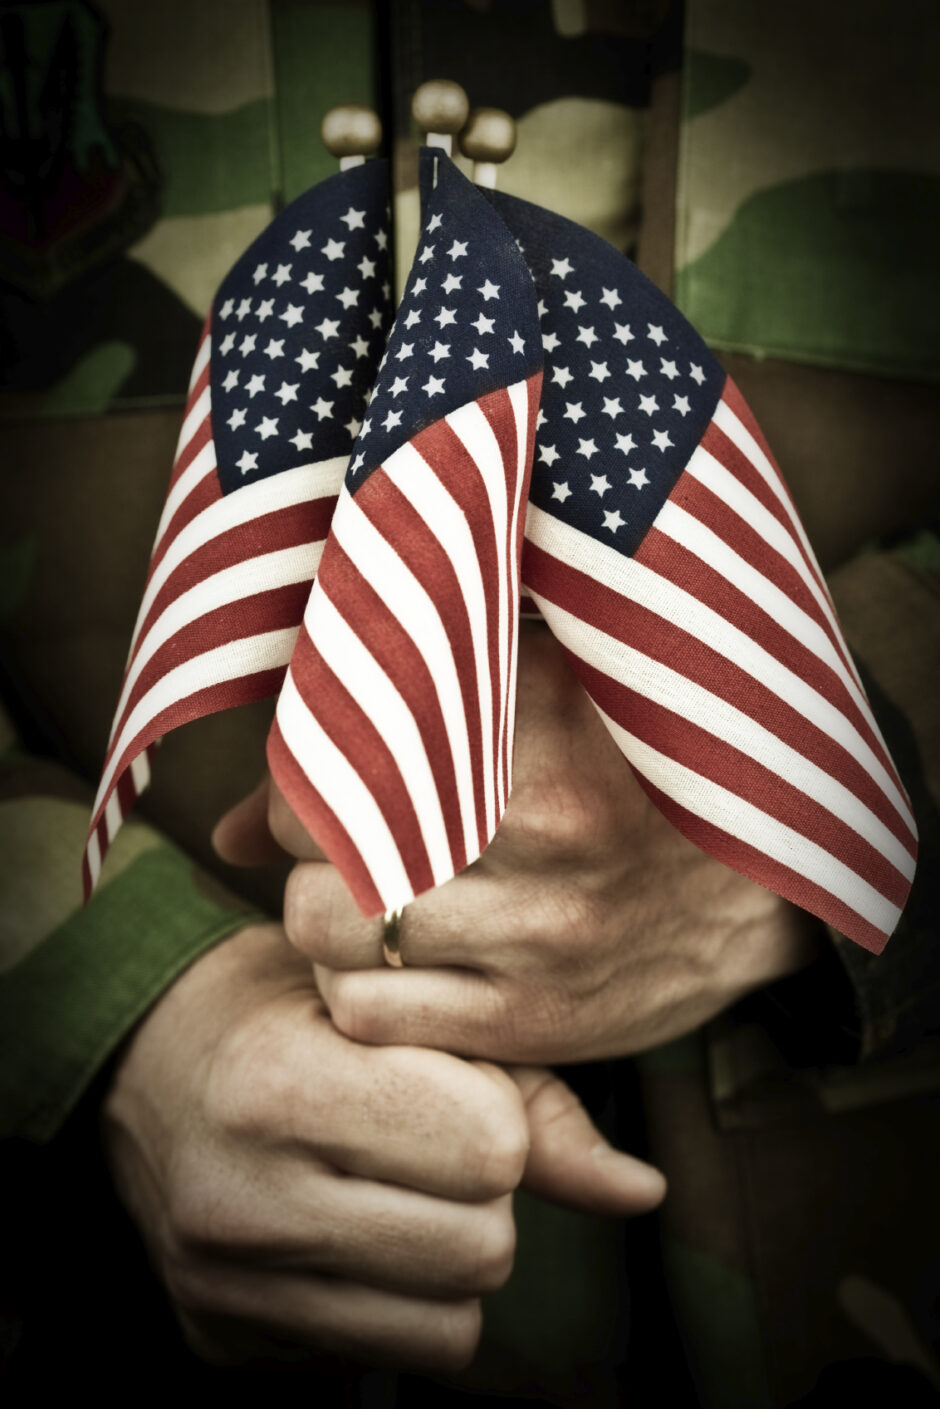 Co-op Offices Closed for Memorial Day, May 27